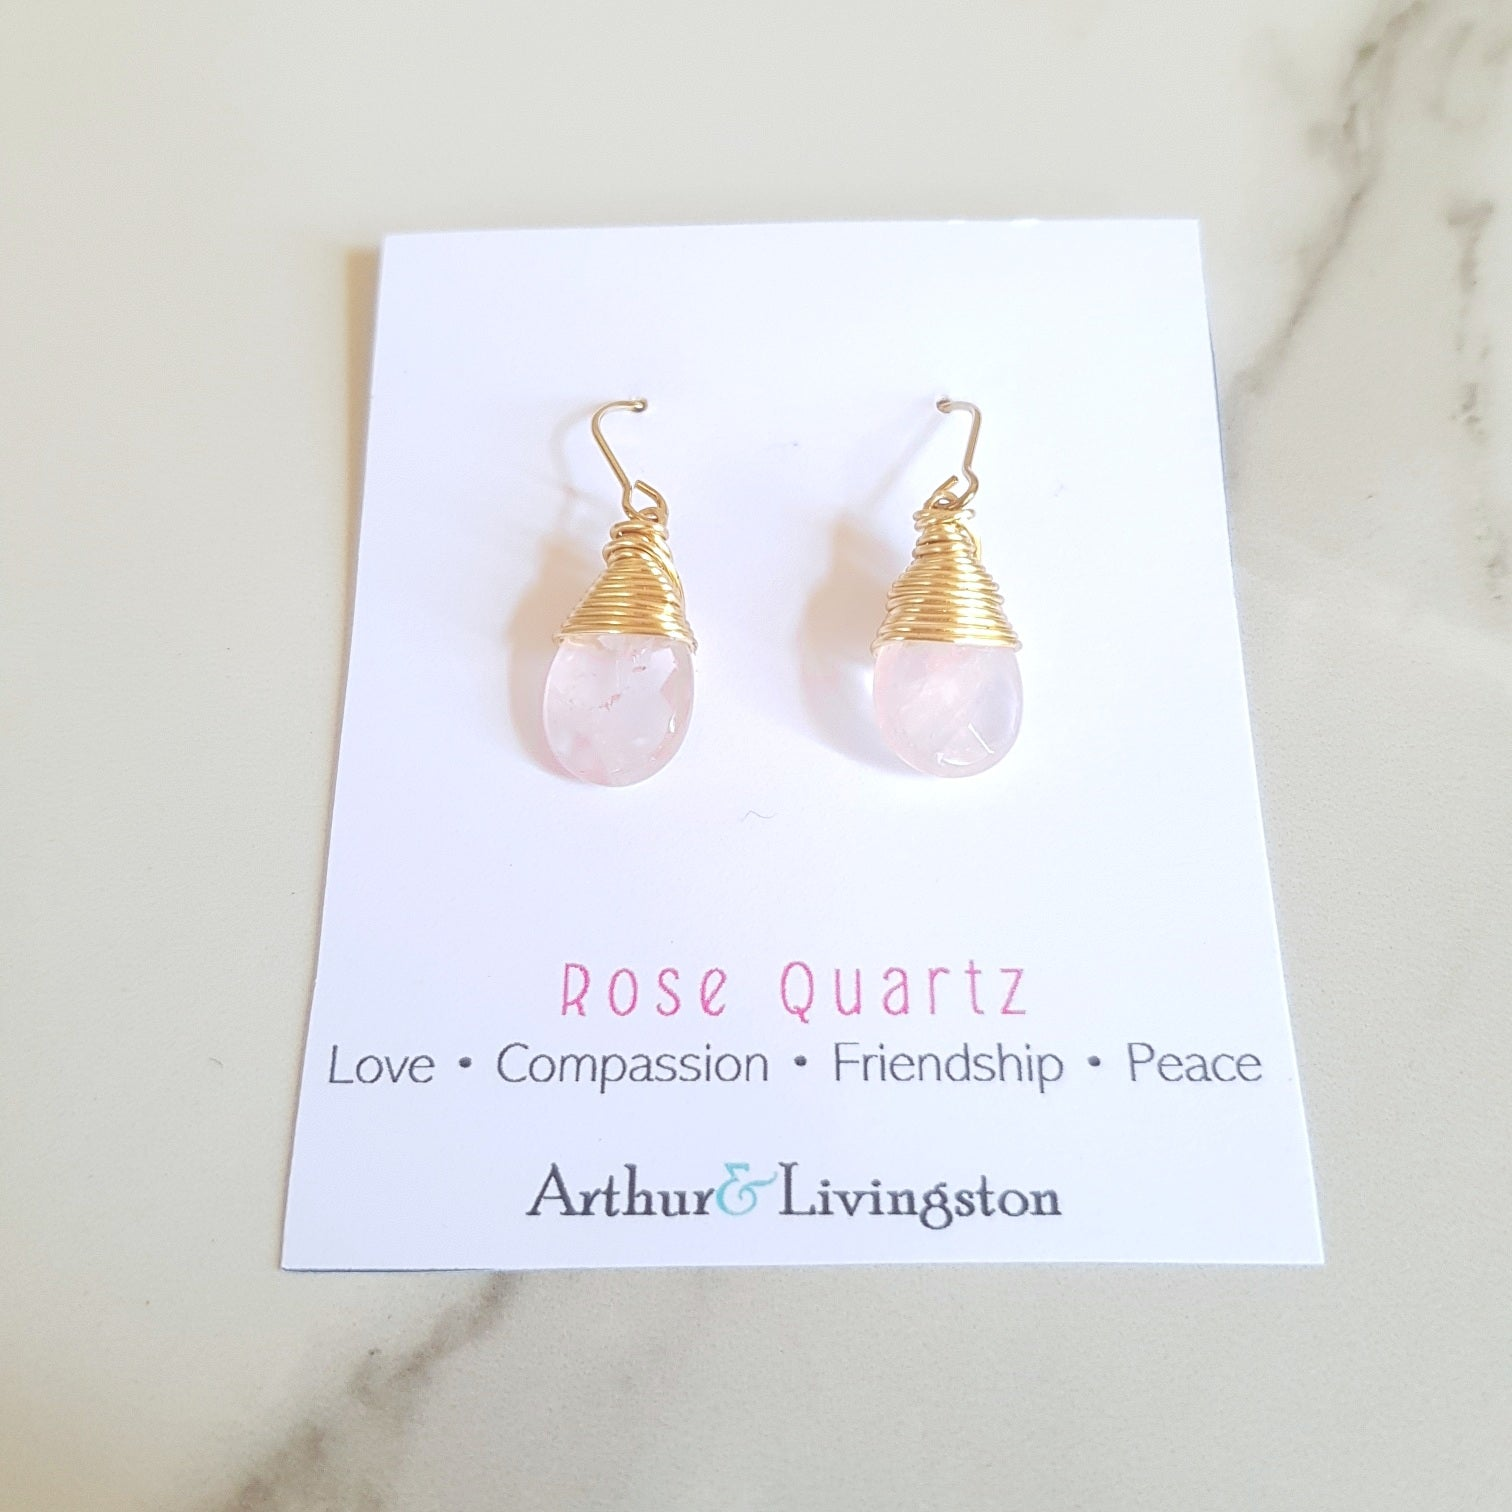 XO Earrings - Rose Quartz